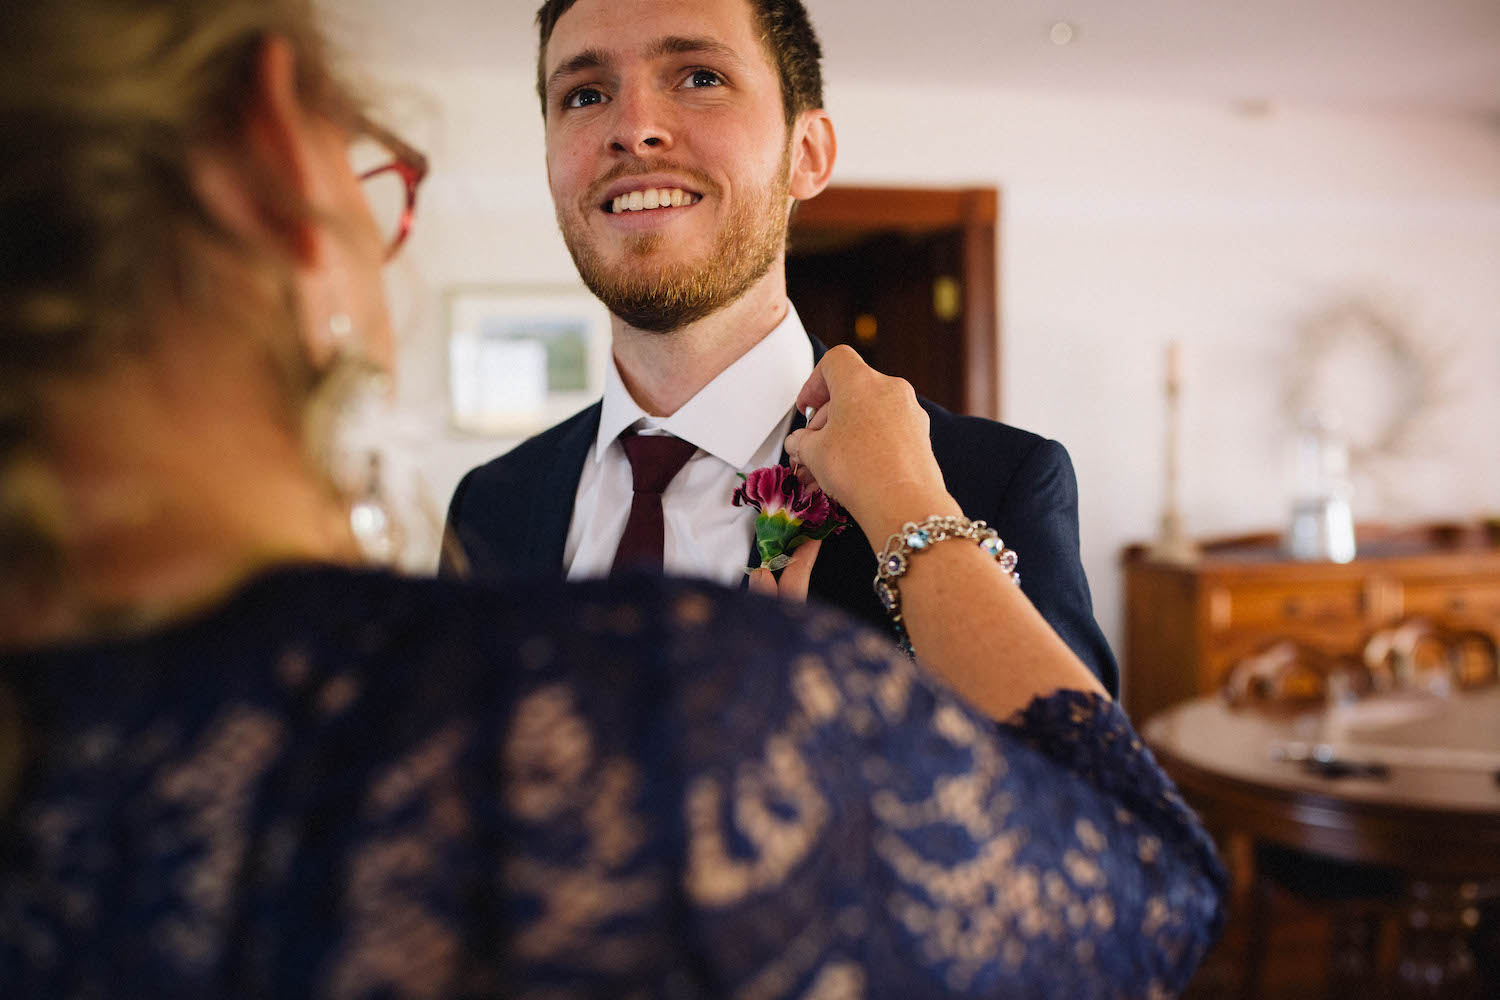 The groom's Mum fixing his buttonhole the morning of his Subiaco wedding.